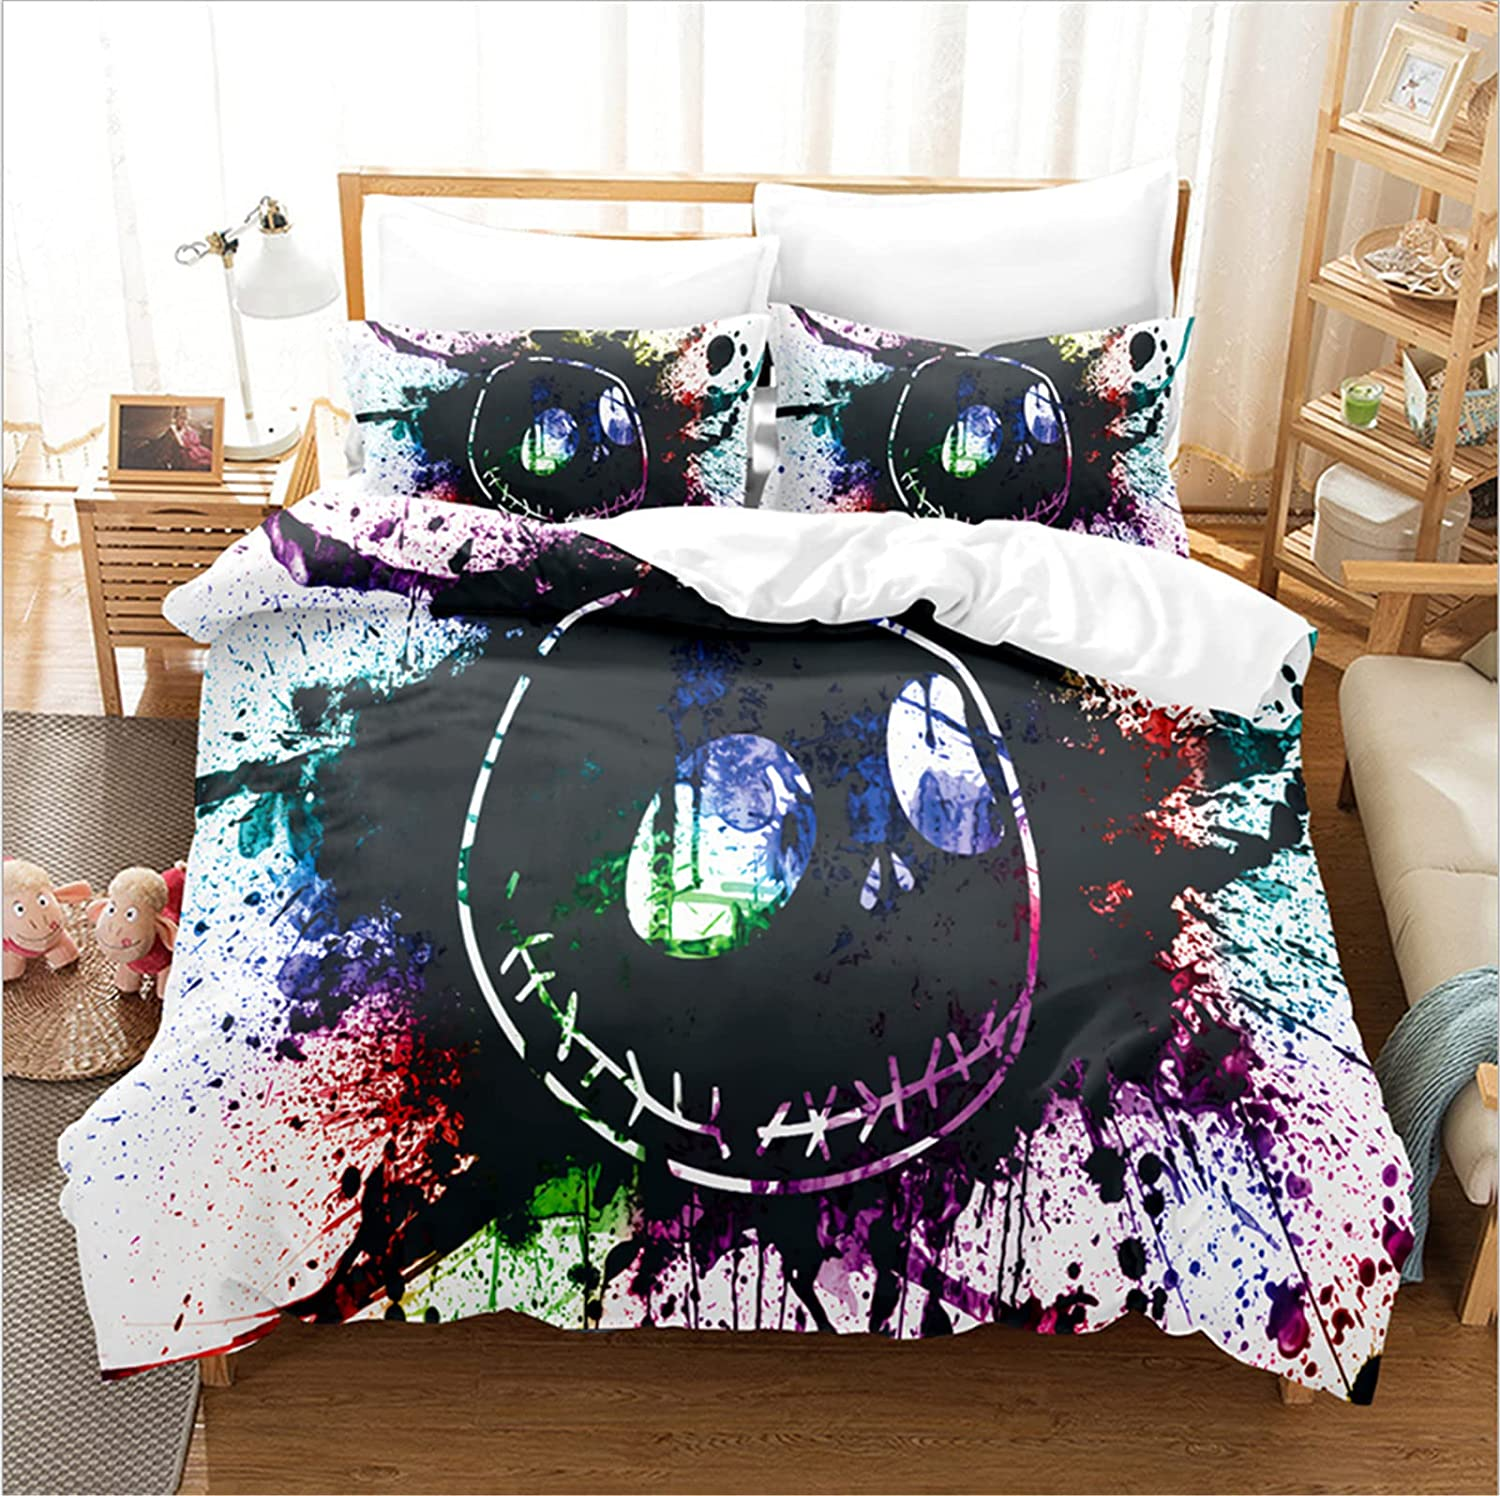 Nightmare Before Christmas Duvet Cover OFFicial site 3 Set Pillowca with 2 Bombing new work Pcs